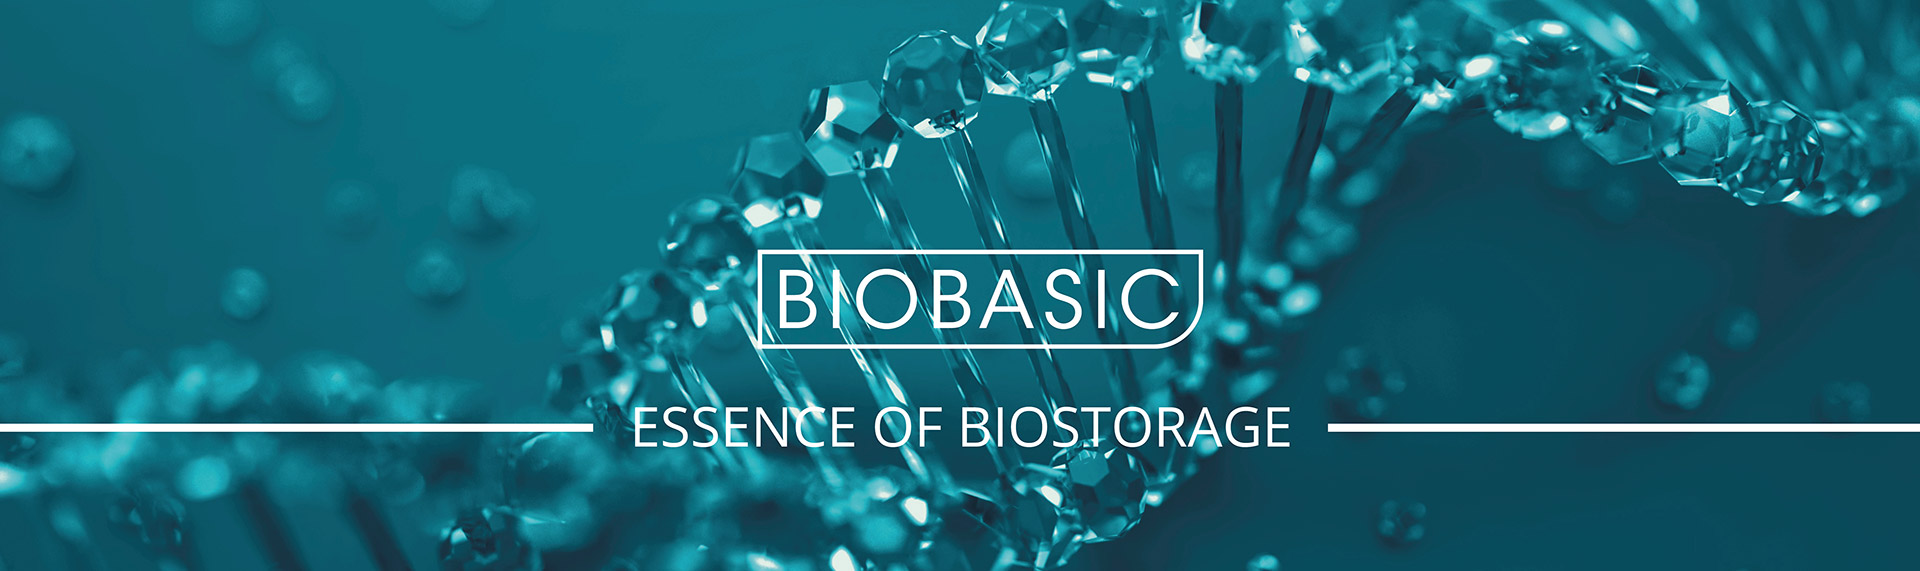 BIOBASIC - ESSENCE OF BIOSTORAGE